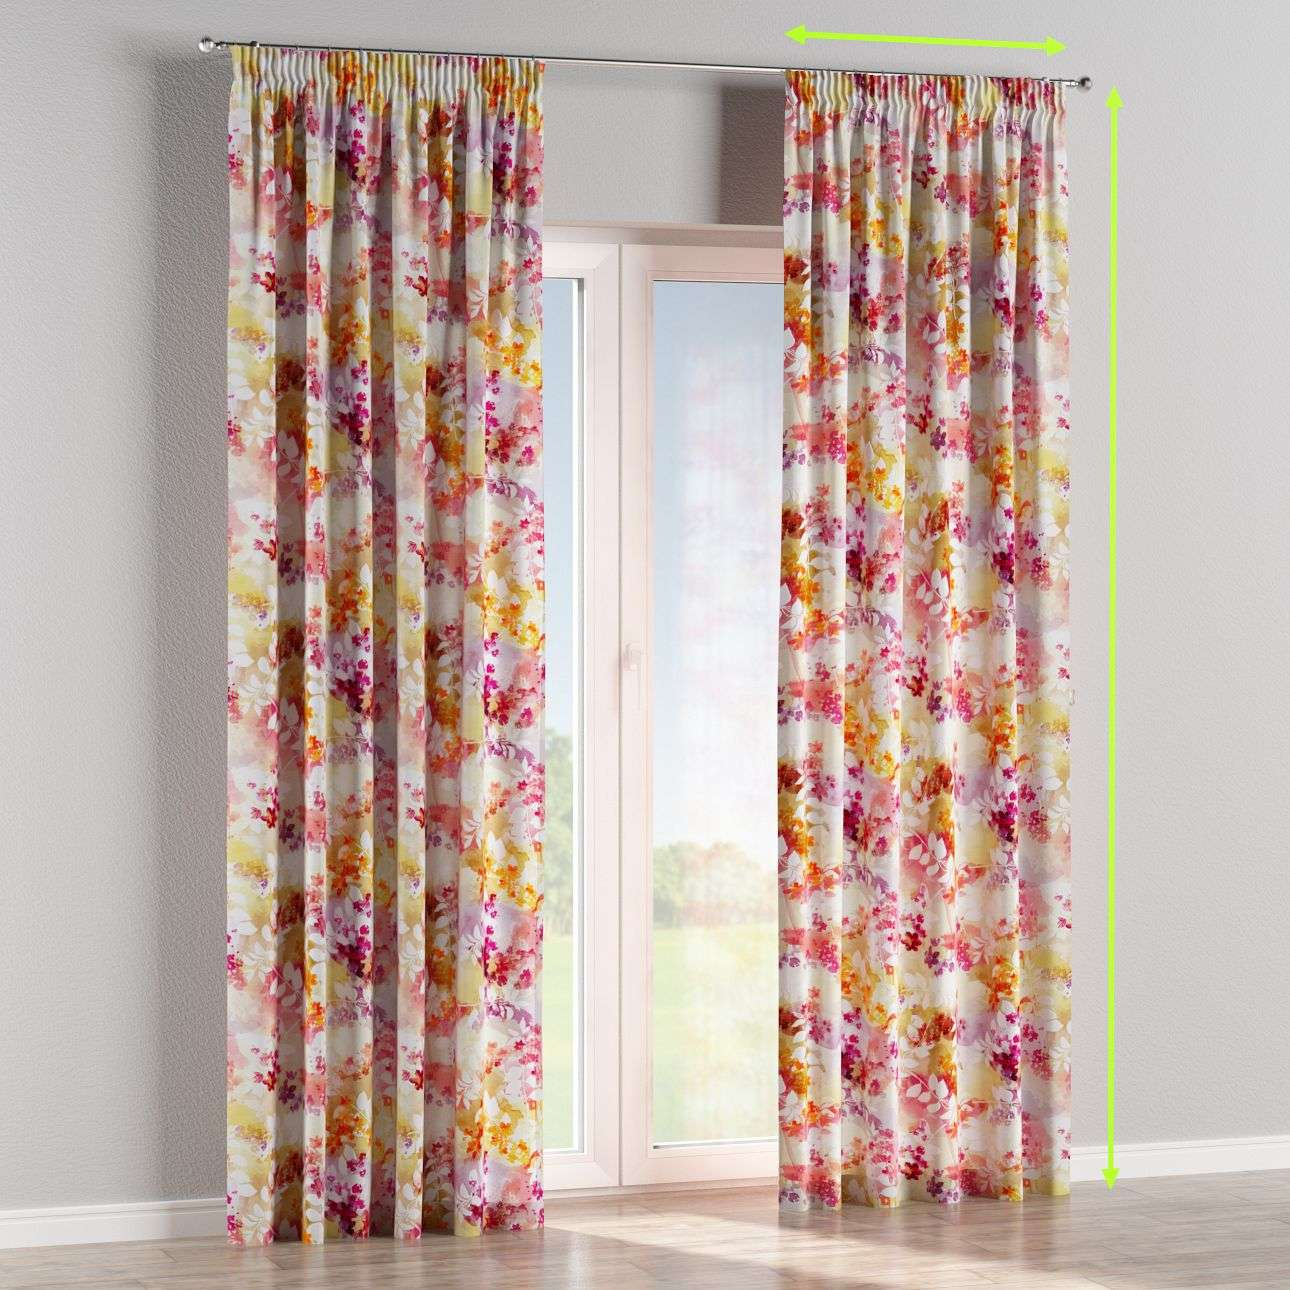 Pencil pleat curtain in collection Monet, fabric: 140-05